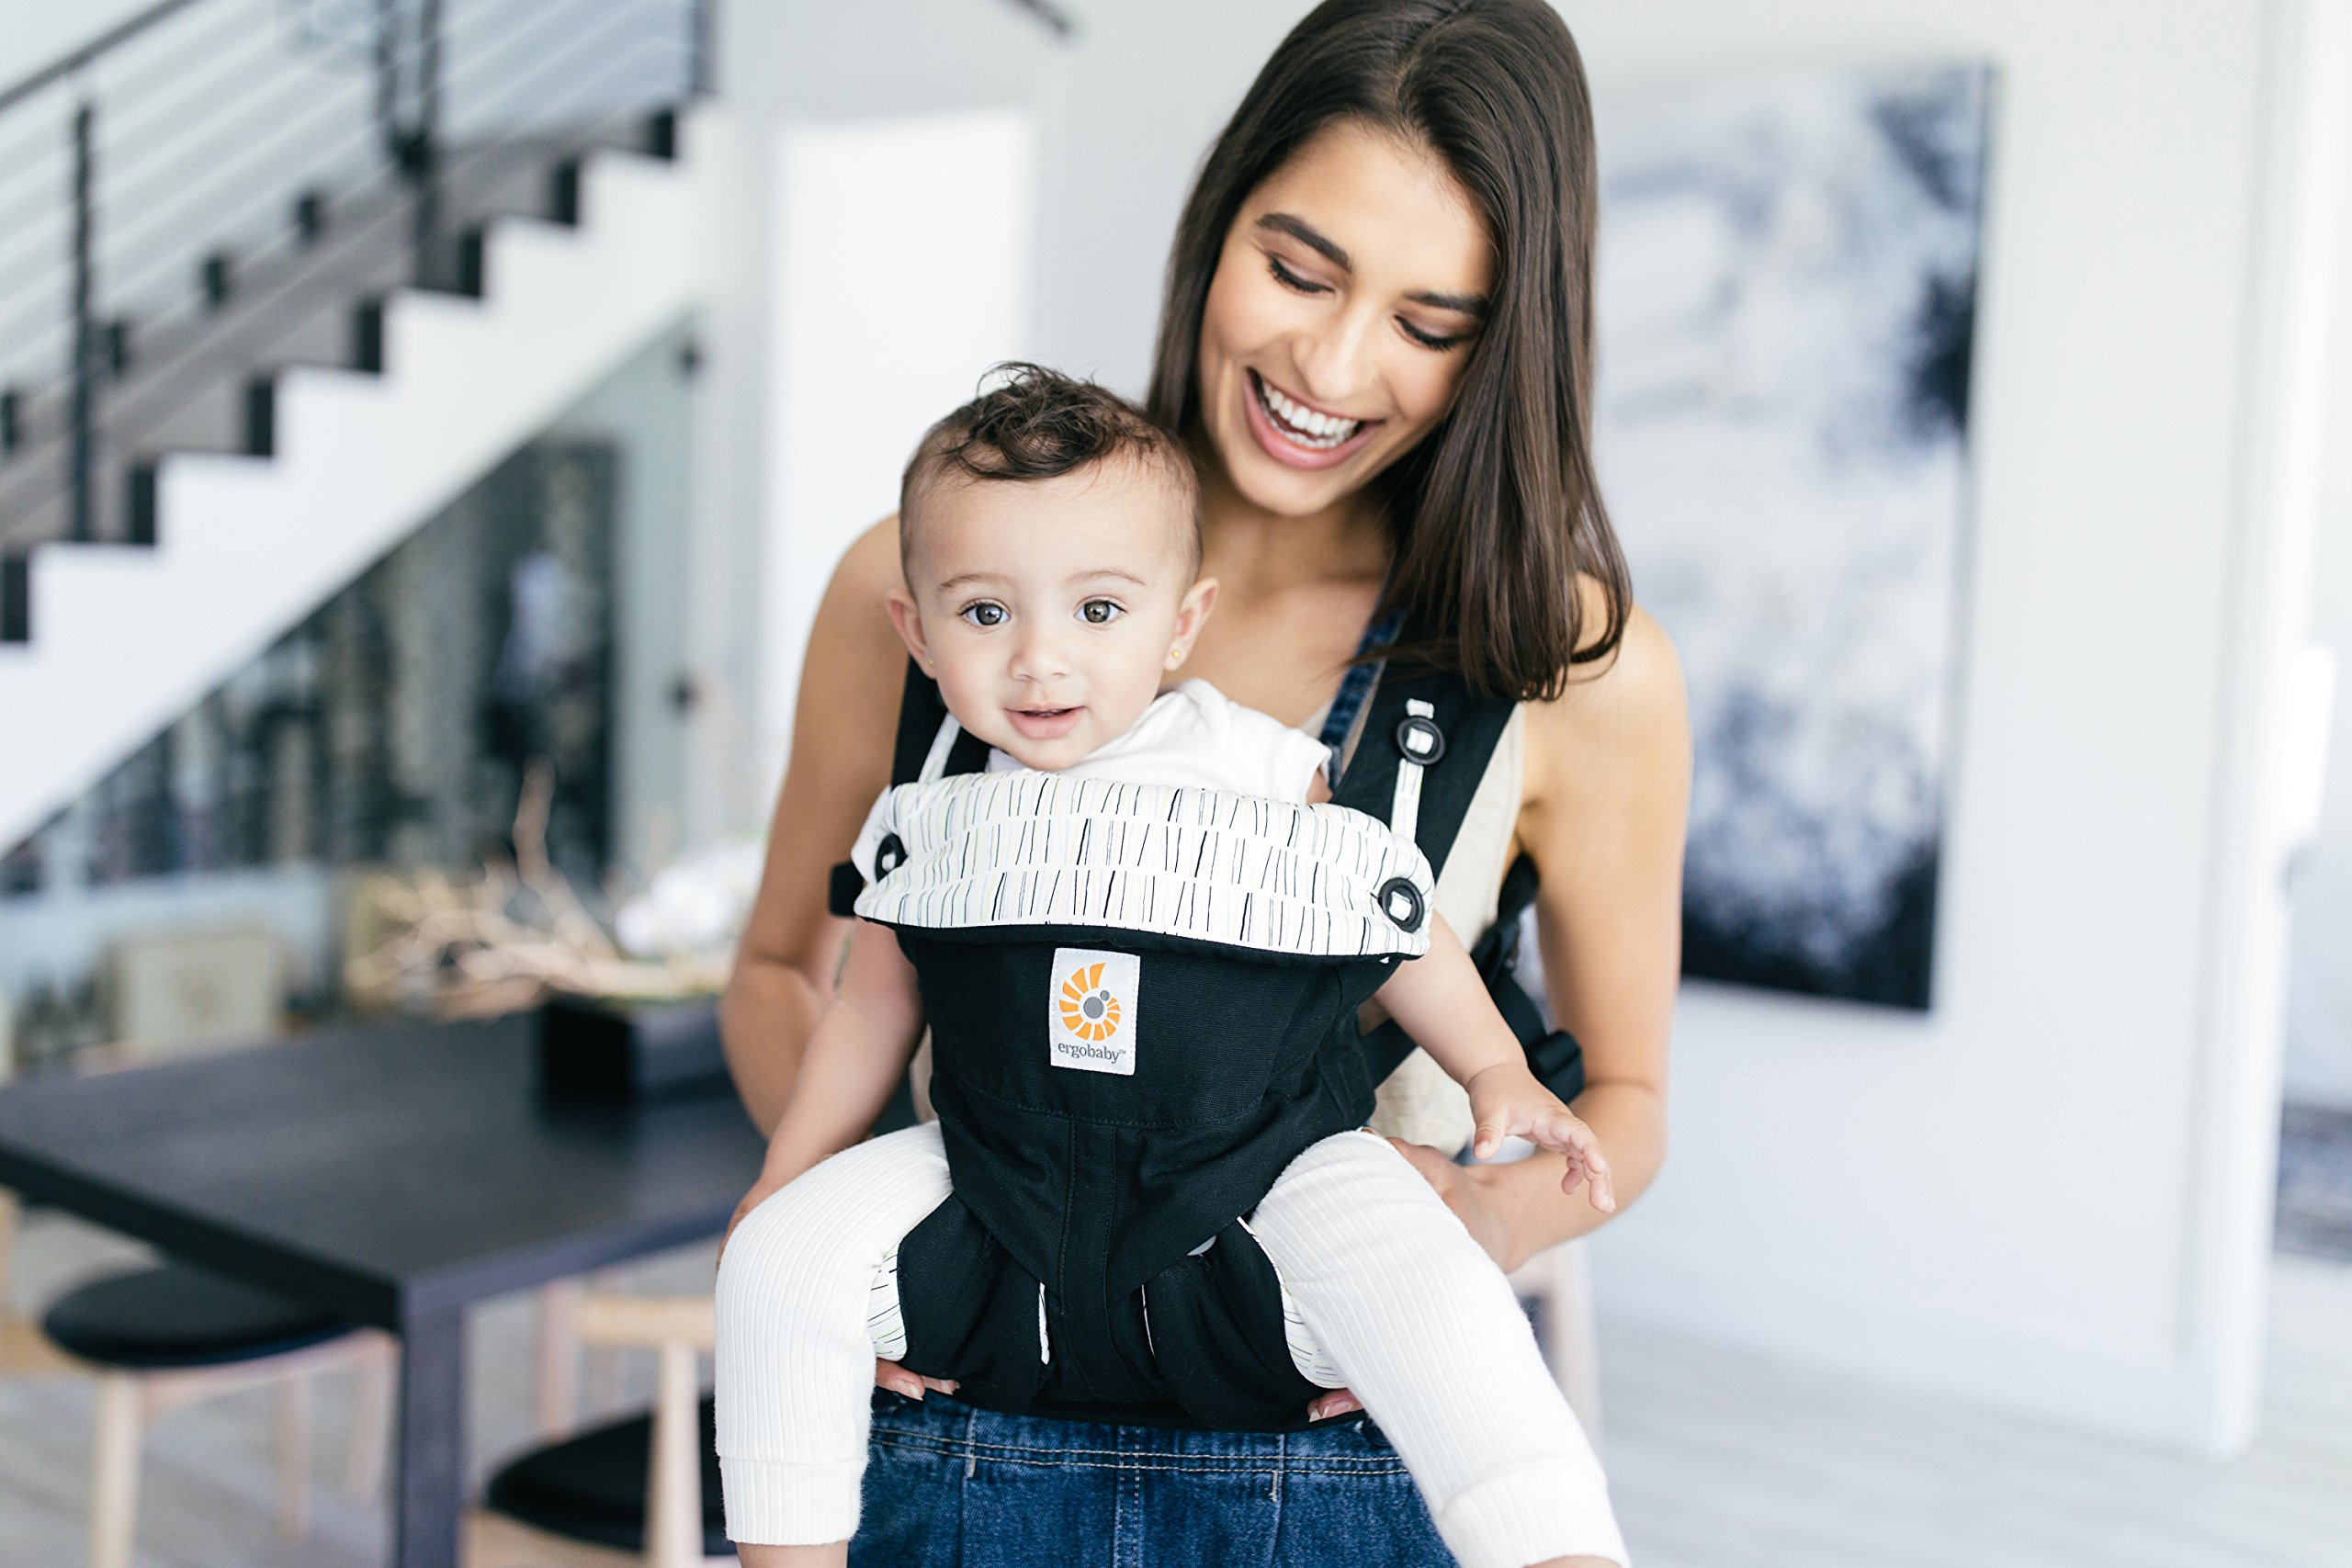 Ergobaby Baby Carrier up to 3 Years (12-45 lbs) 360 Downtown Design, 4 Ergonomic Carry Positions, Front Facing Baby Carrier, Child Carrier Backpack Ergobaby Ergonomic baby carrier with 4 ergonomic carry positions: front-inward, back, hip, and front-outward. The carrier is suitable for babies and toddlers weighing 5.5-20 kg (12-45 lbs), and can be used as a back carrier. Also with insert for newborn babies weighing 3.2-5.5 kg (7-12 lbs), sold separately. NEW - The waistbelt with lumbar support can be worn a little higher or lower to support the lower back and provide optimal comfort, and has adjustable padded shoulder straps. The carrier is suitable for men and women. Maximum baby comfort - The structured bucket seat supports the correct frog-leg position for the baby. The carrier also has a padded, foldable head and neck support. Ergobaby carriers are a new take on the usual baby sling. 6